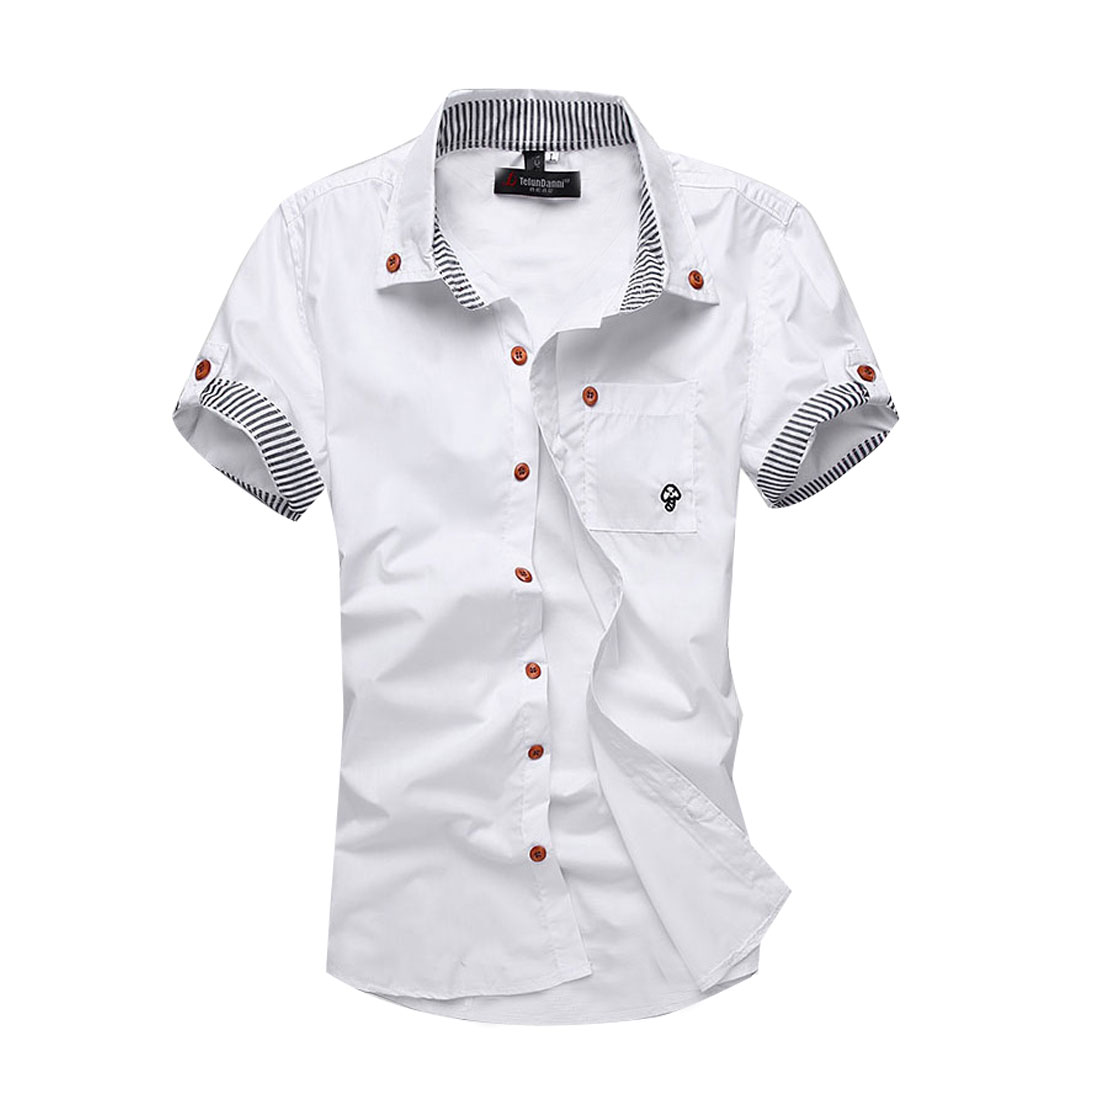 Man Stylish Buttons Front Stripes Details Modern Shirt White M